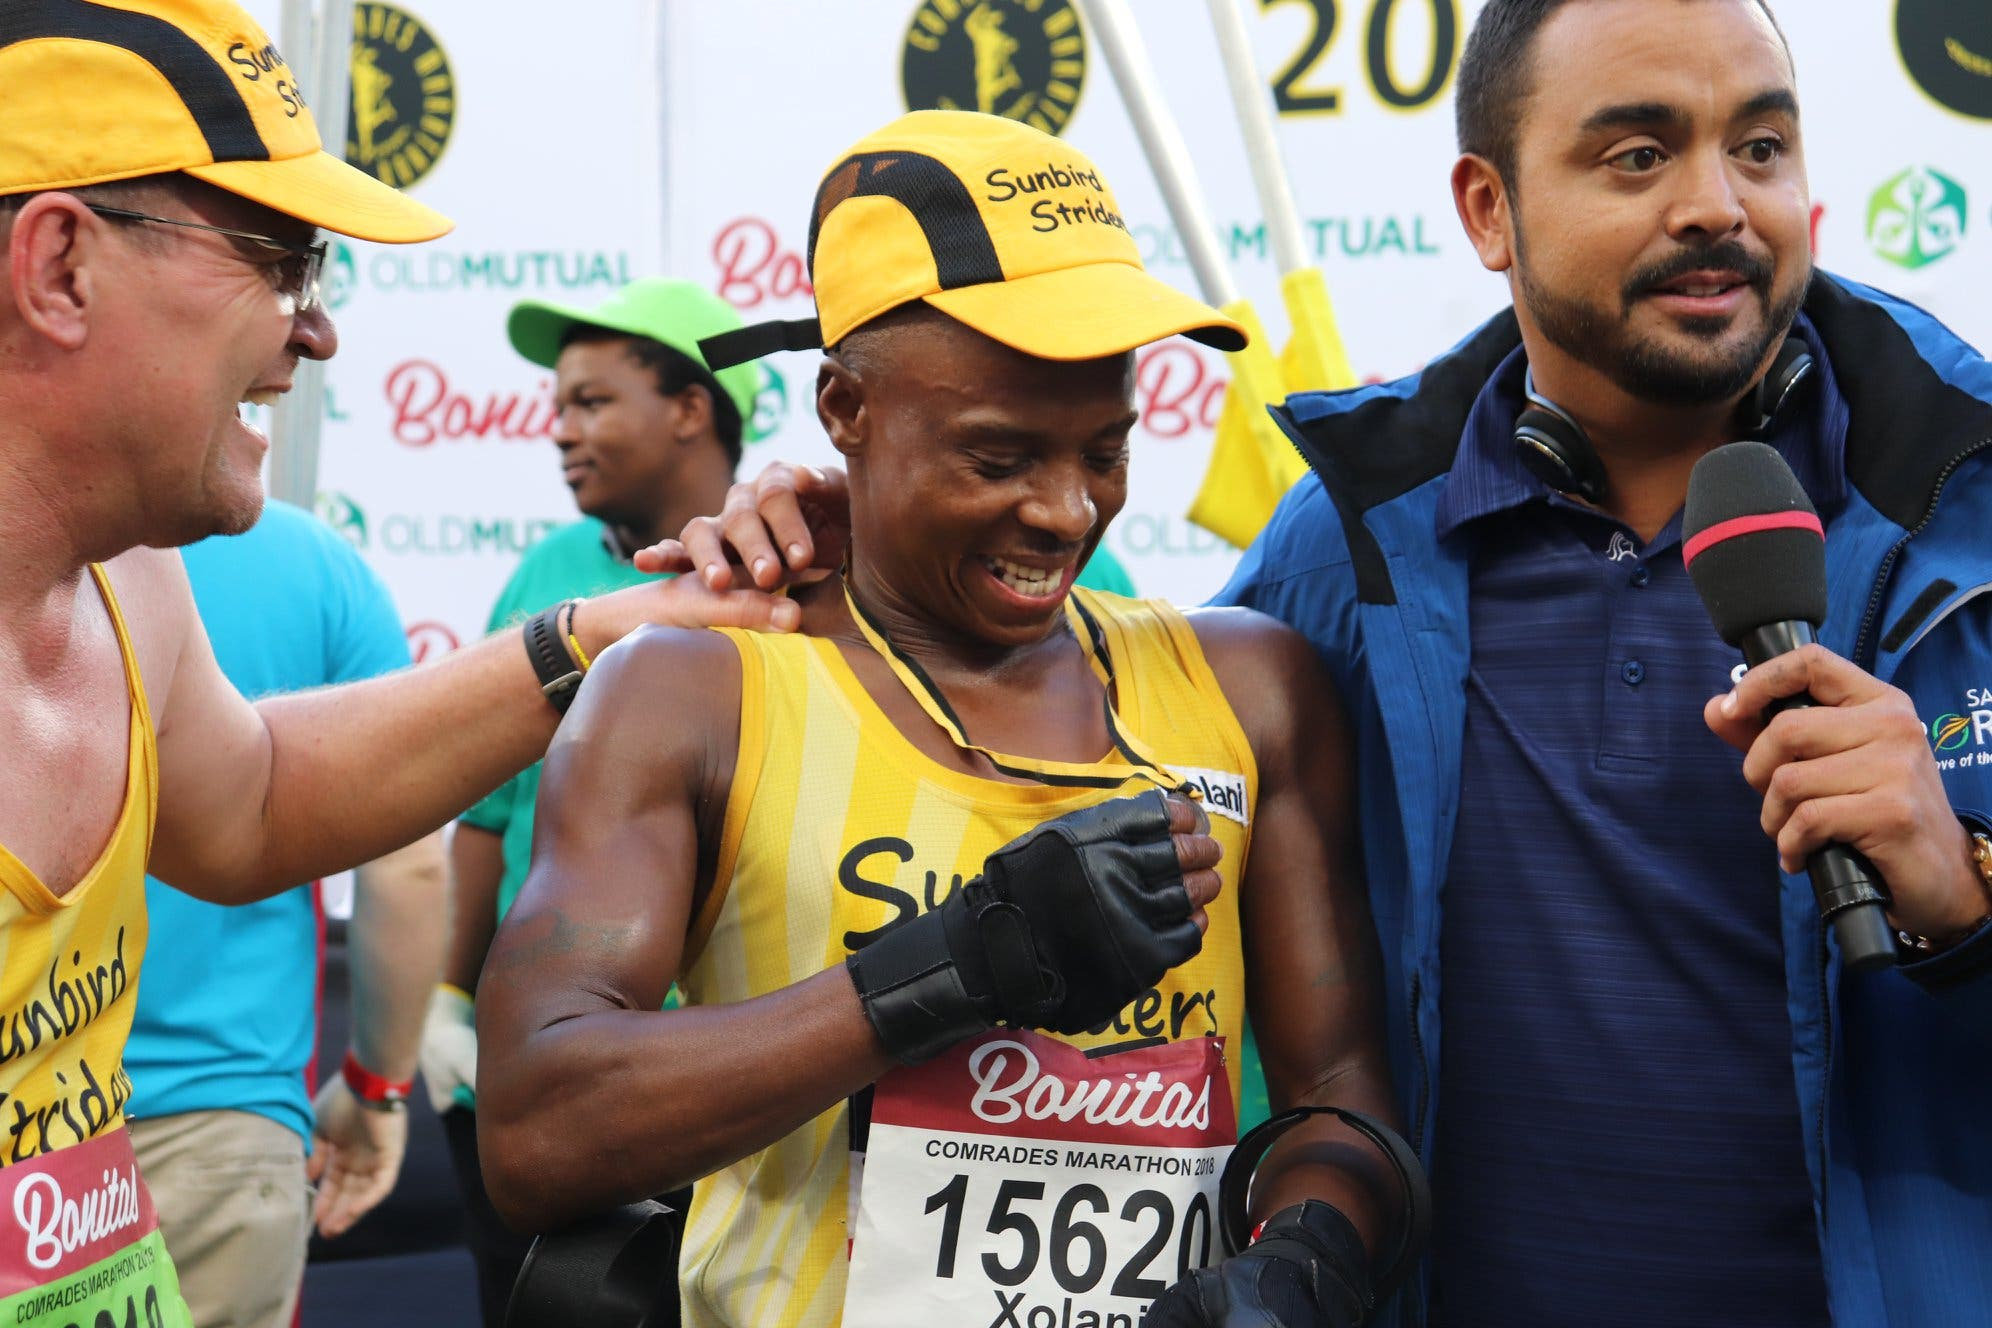 Comrades Marathon Gives Special Medal To Awesome Amputee Runner Xolani Luvuno Sapeople Your Worldwide South African Community